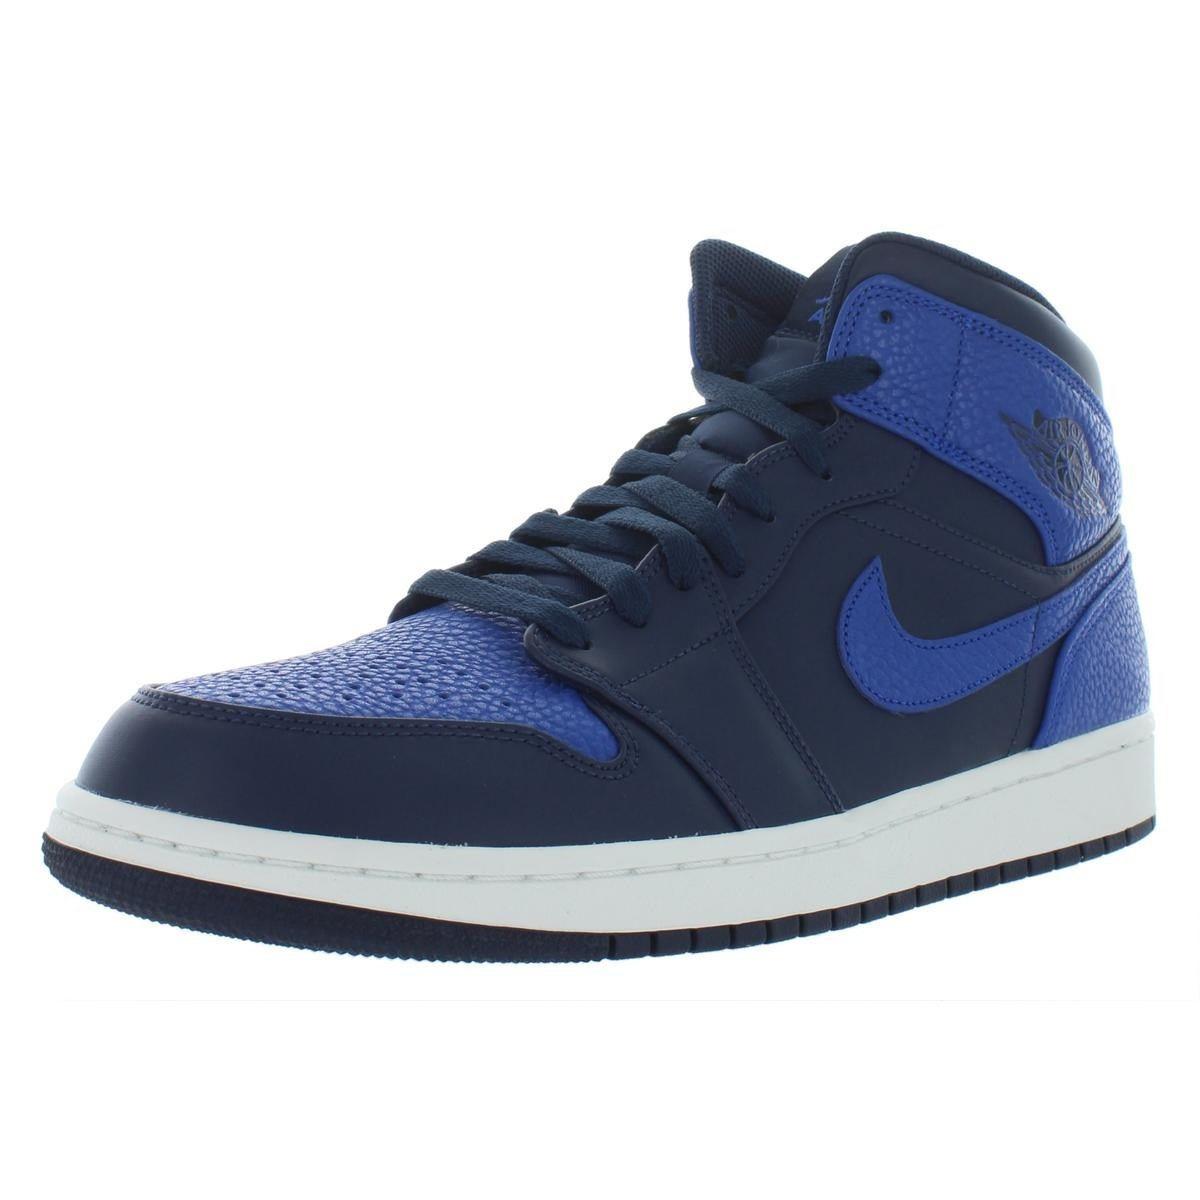 530b5c7557e1 Shop Nike Mens Air Jordan 1 Mid Basketball Shoes Suede High Top - Free  Shipping Today - Overstock - 22025114